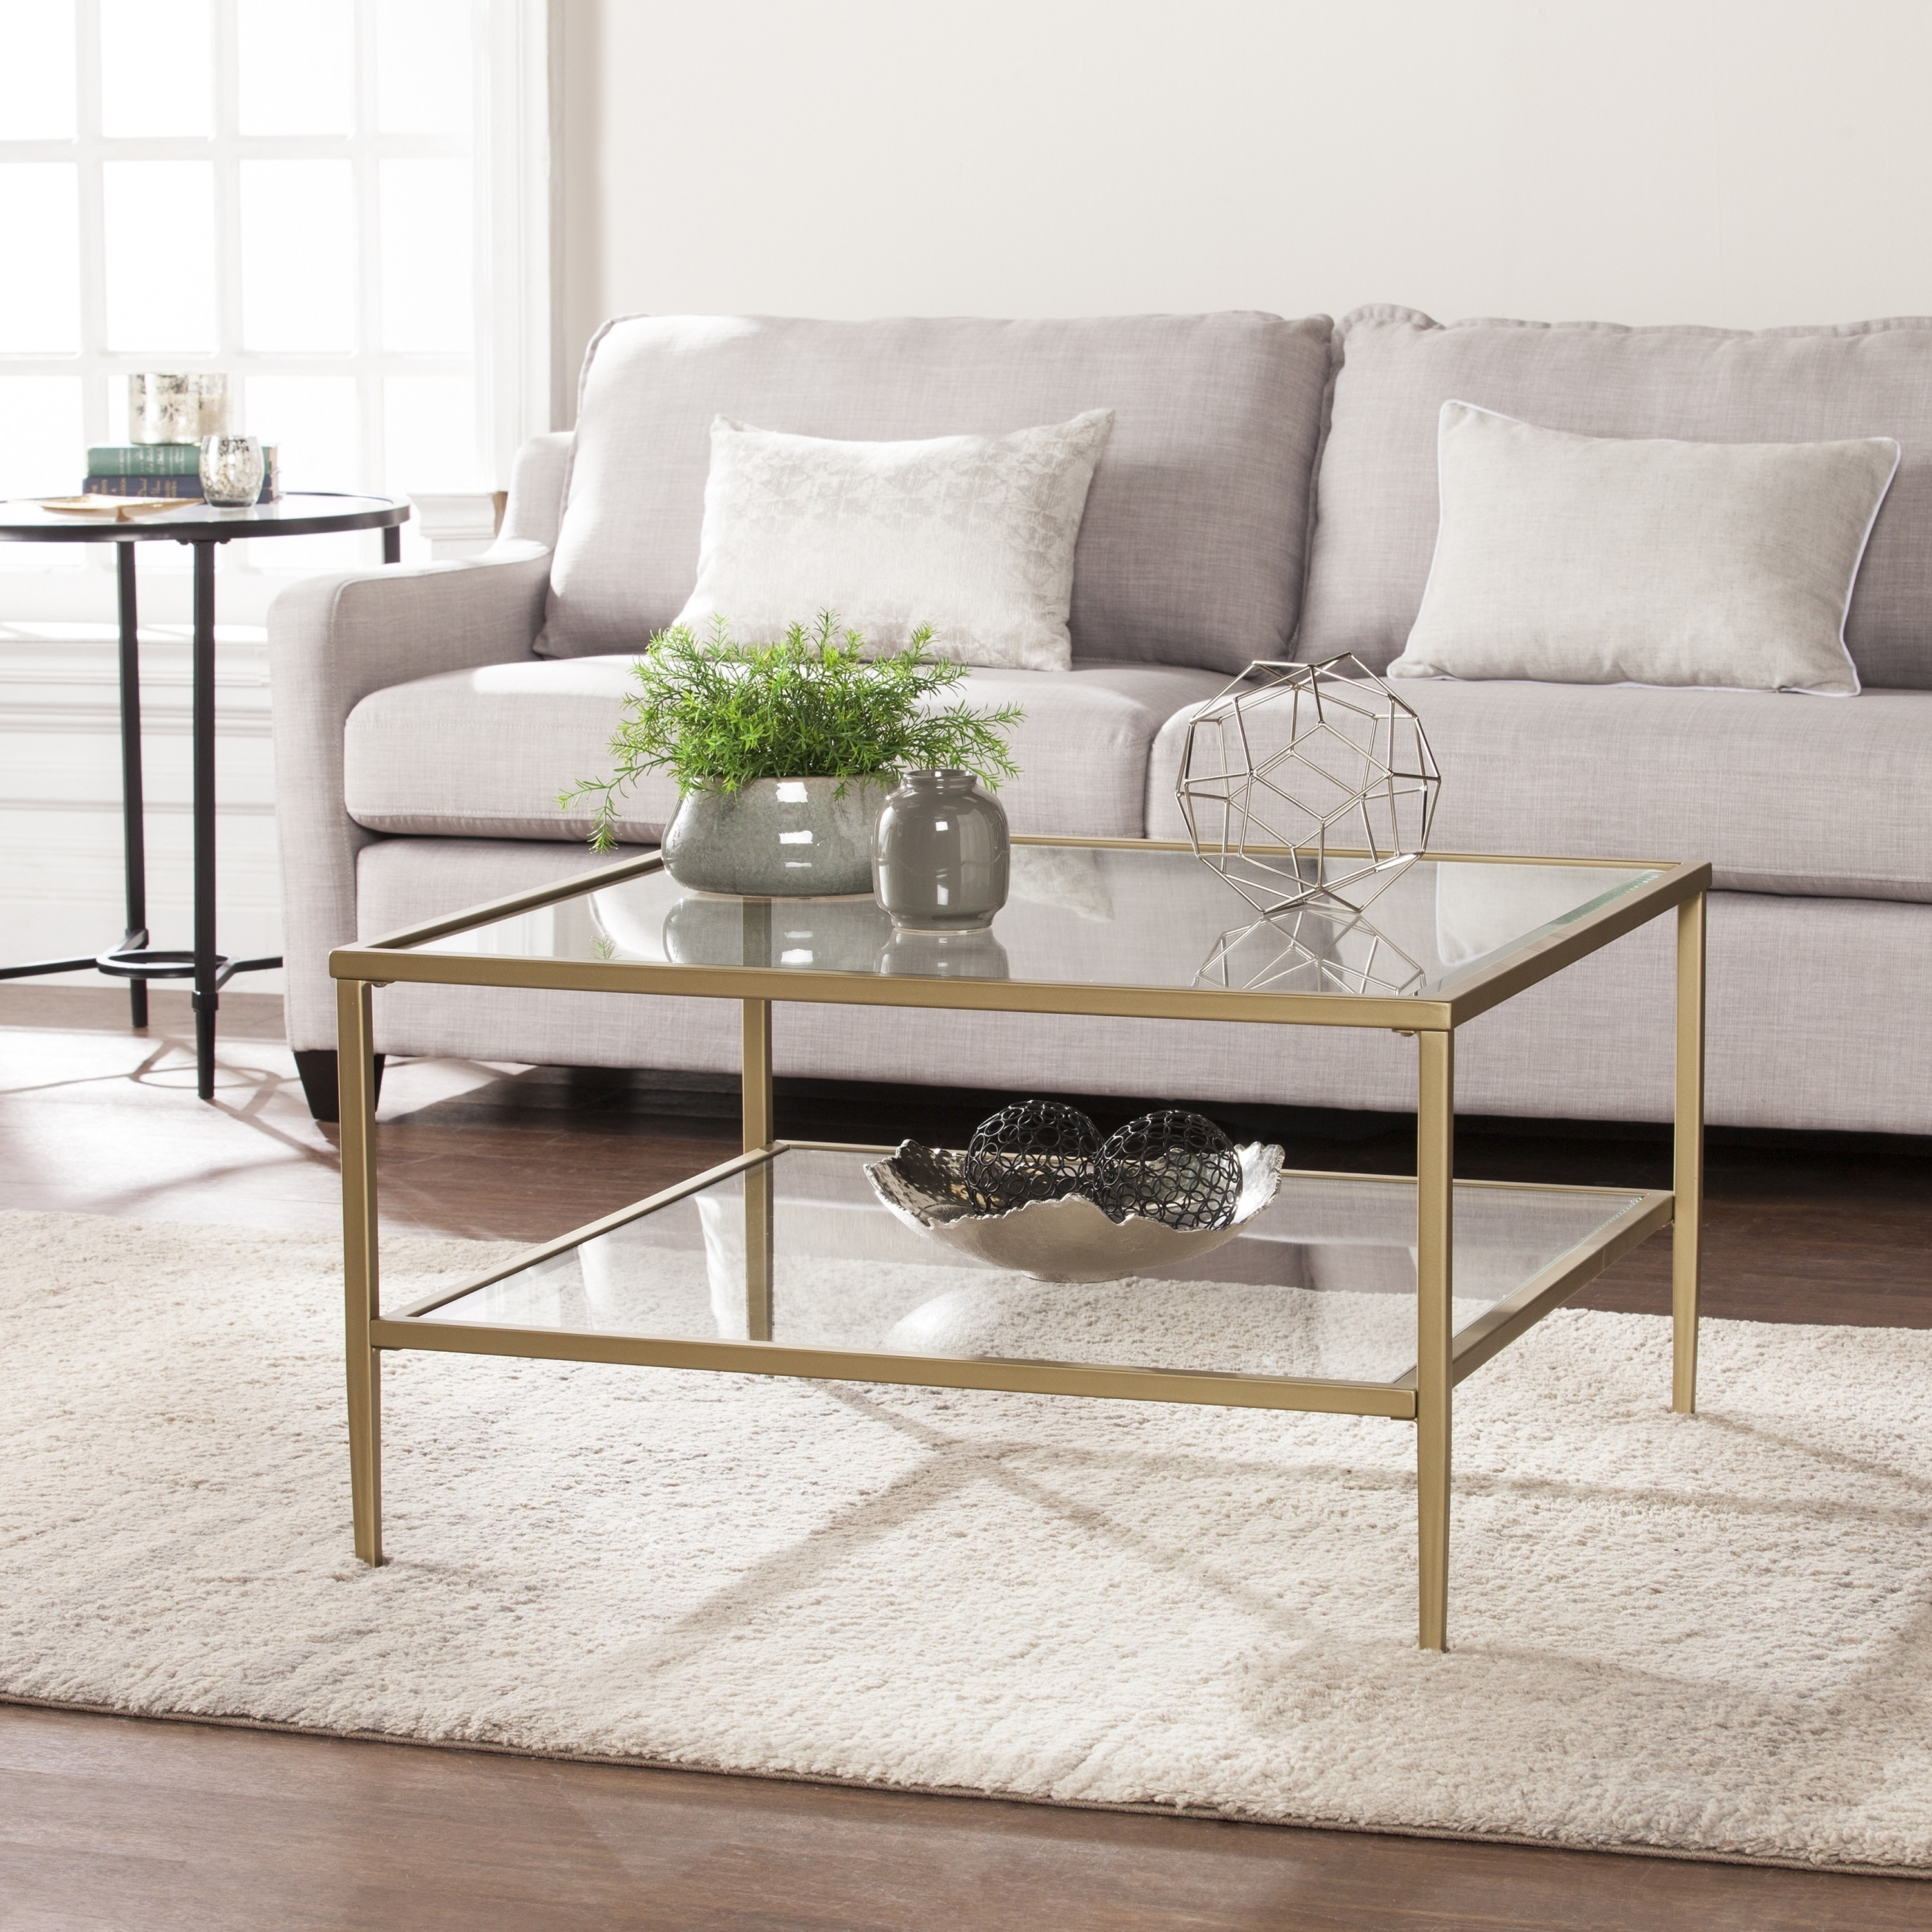 Metal Coffee Table Buy Glass Coffee Tables Online At Overstock Our Best Living